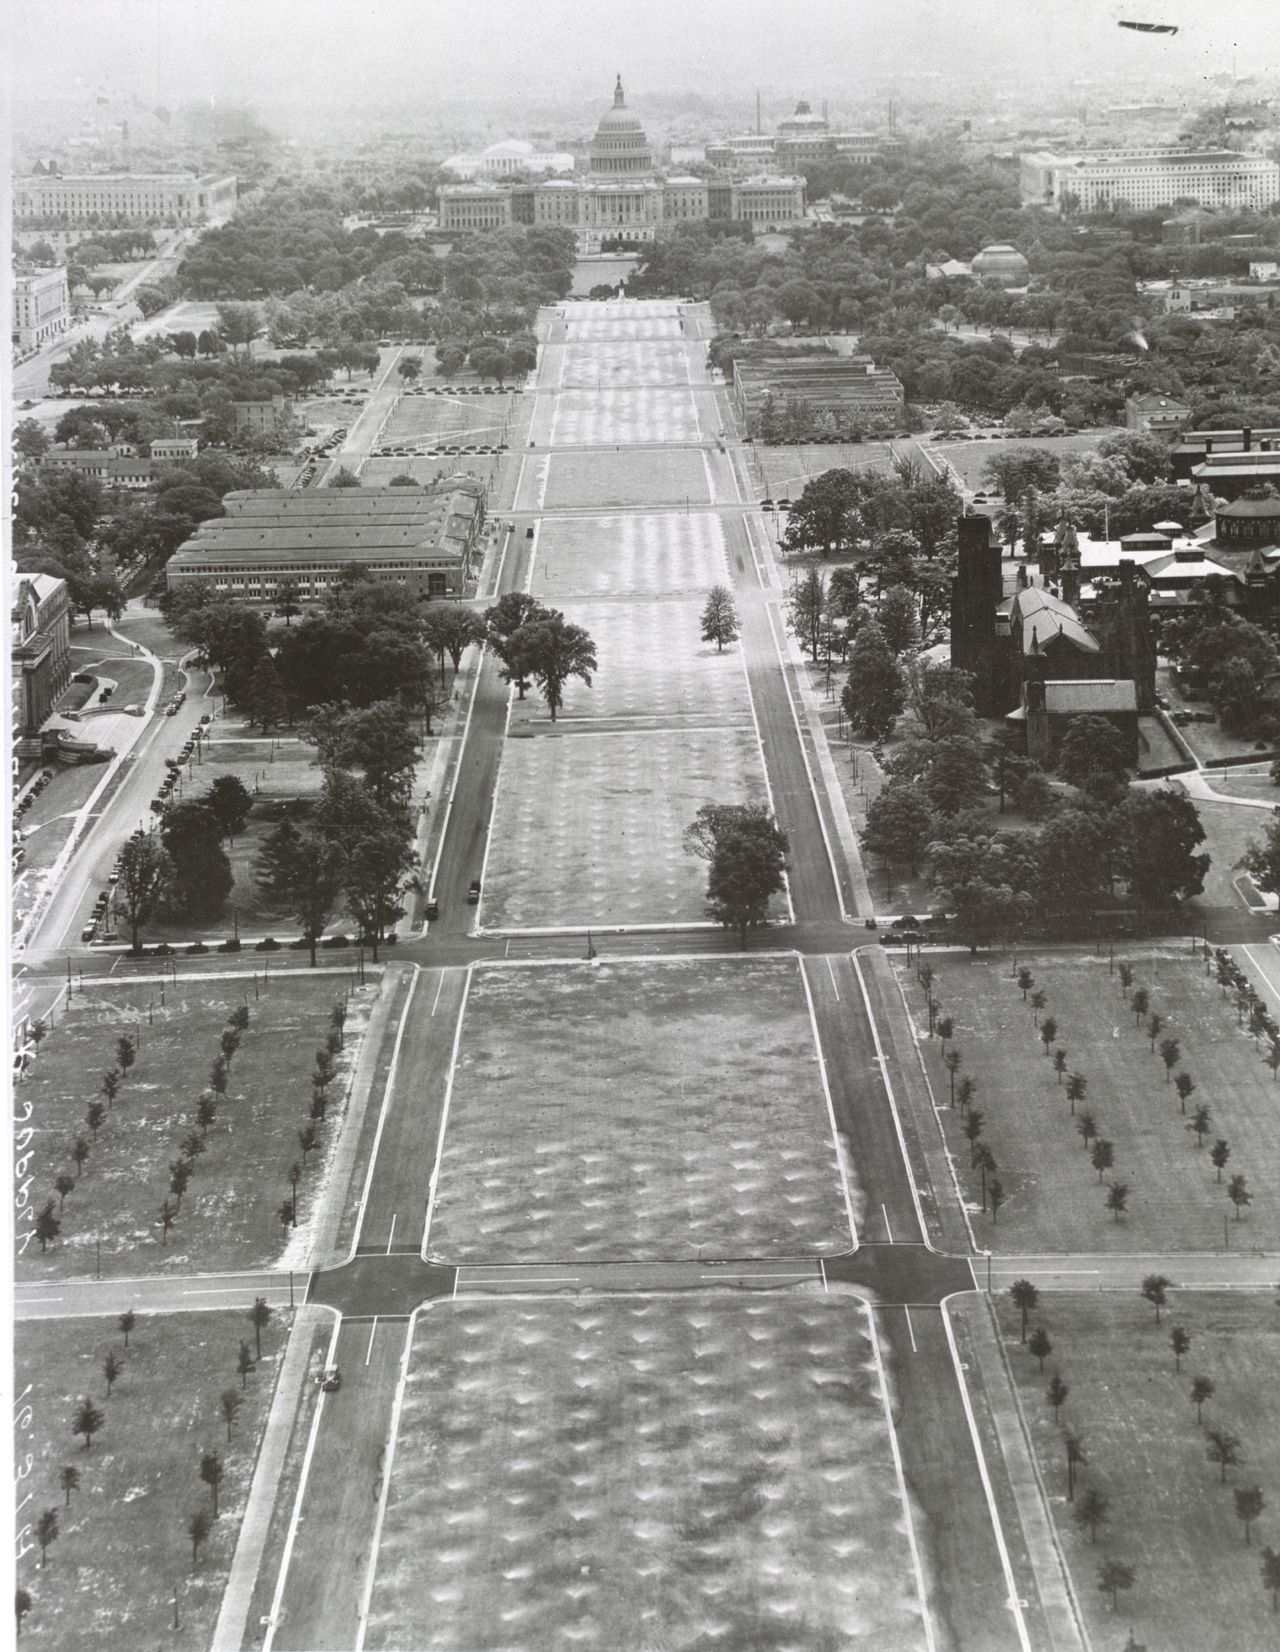 Ca 1936 The Mall From The Washington Monument Washington D C A D White Architectural Photographs Cornell Washington Monument Monument National Mall